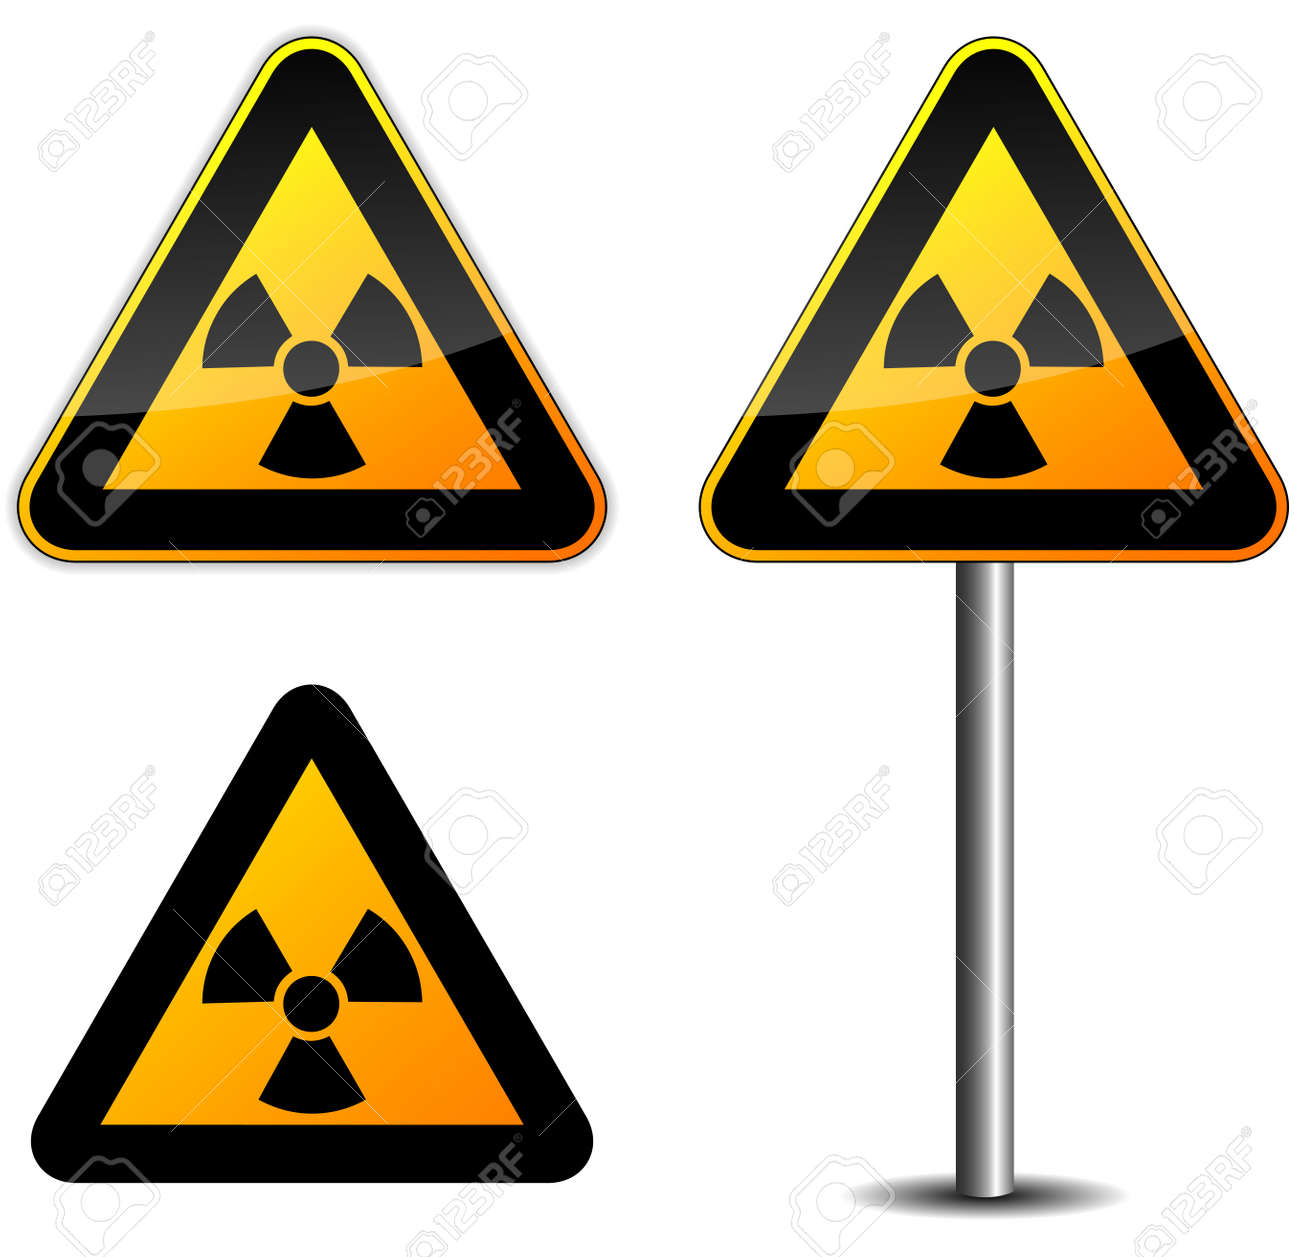 Illustration of radioactive sign on white background Stock Vector - 23945444